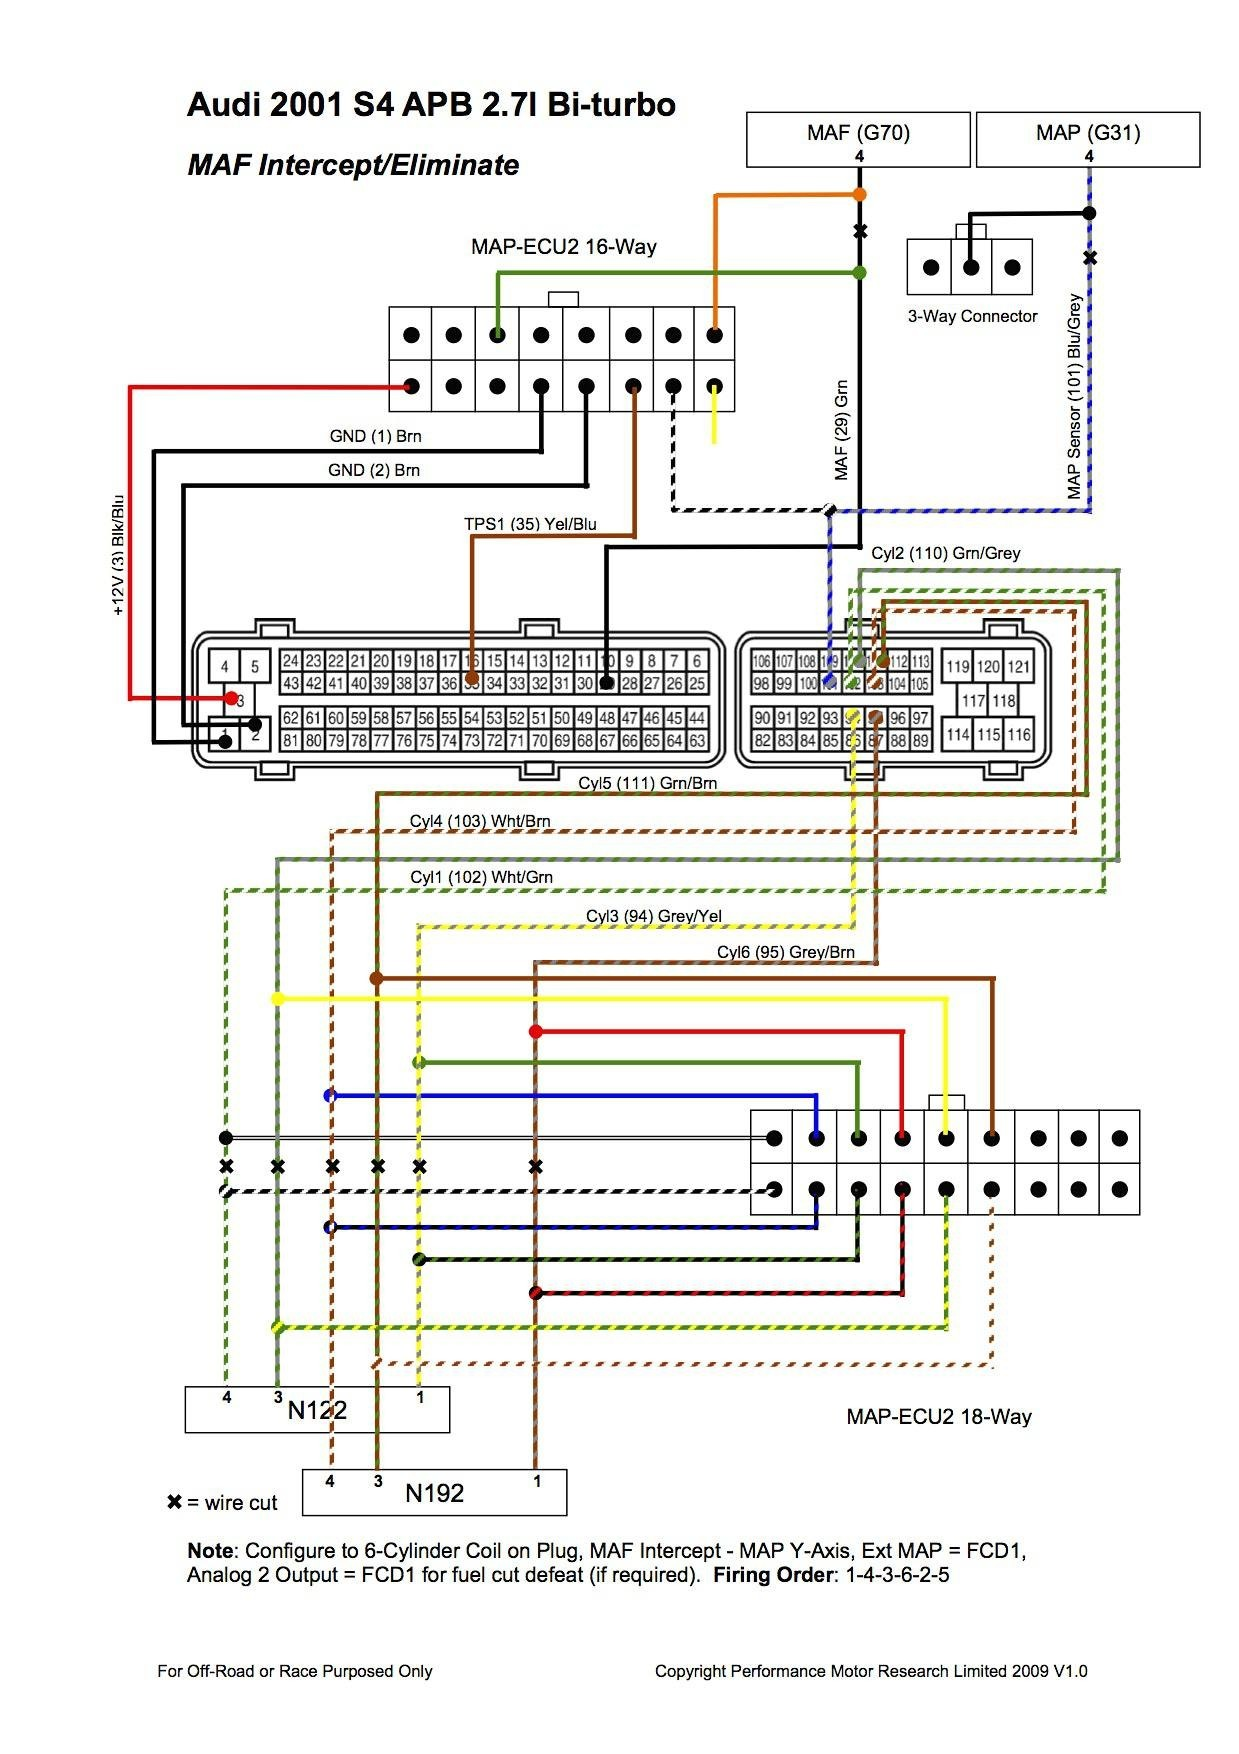 2005 Dodge Ram 2500 Wiring Diagram from static-resources.imageservice.cloud